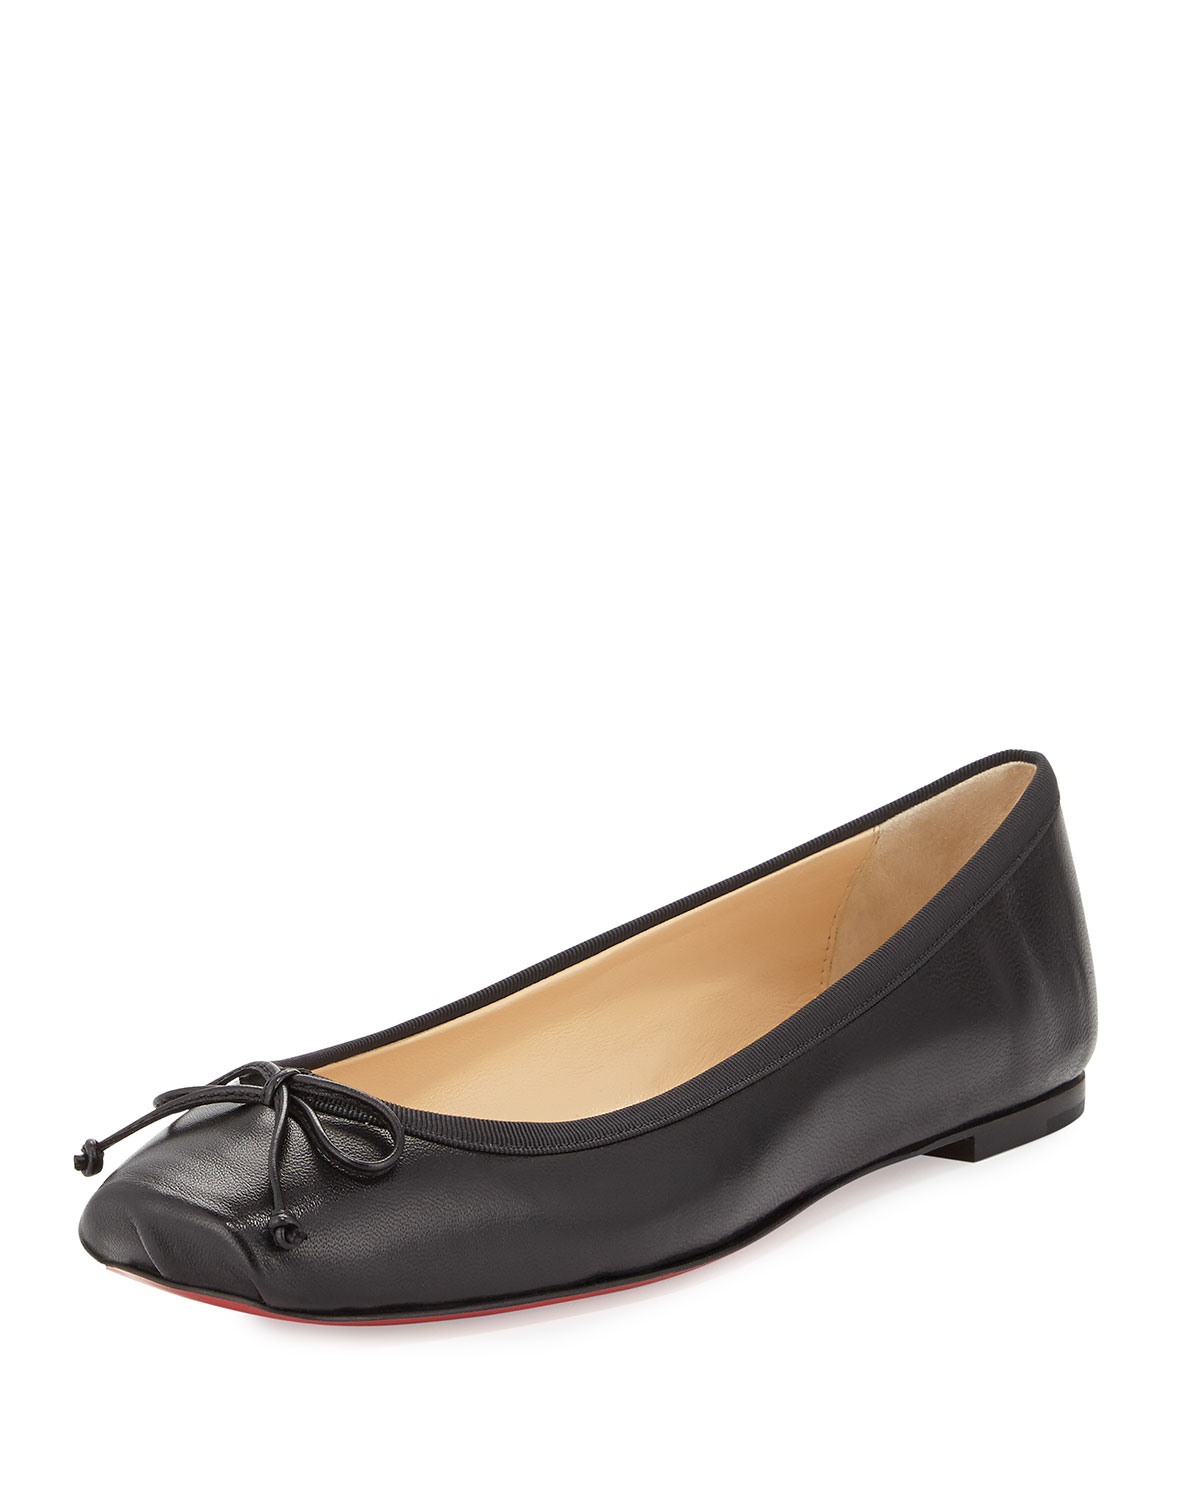 Lyst Christian Louboutin Square Toe Ballerina Flat In Black